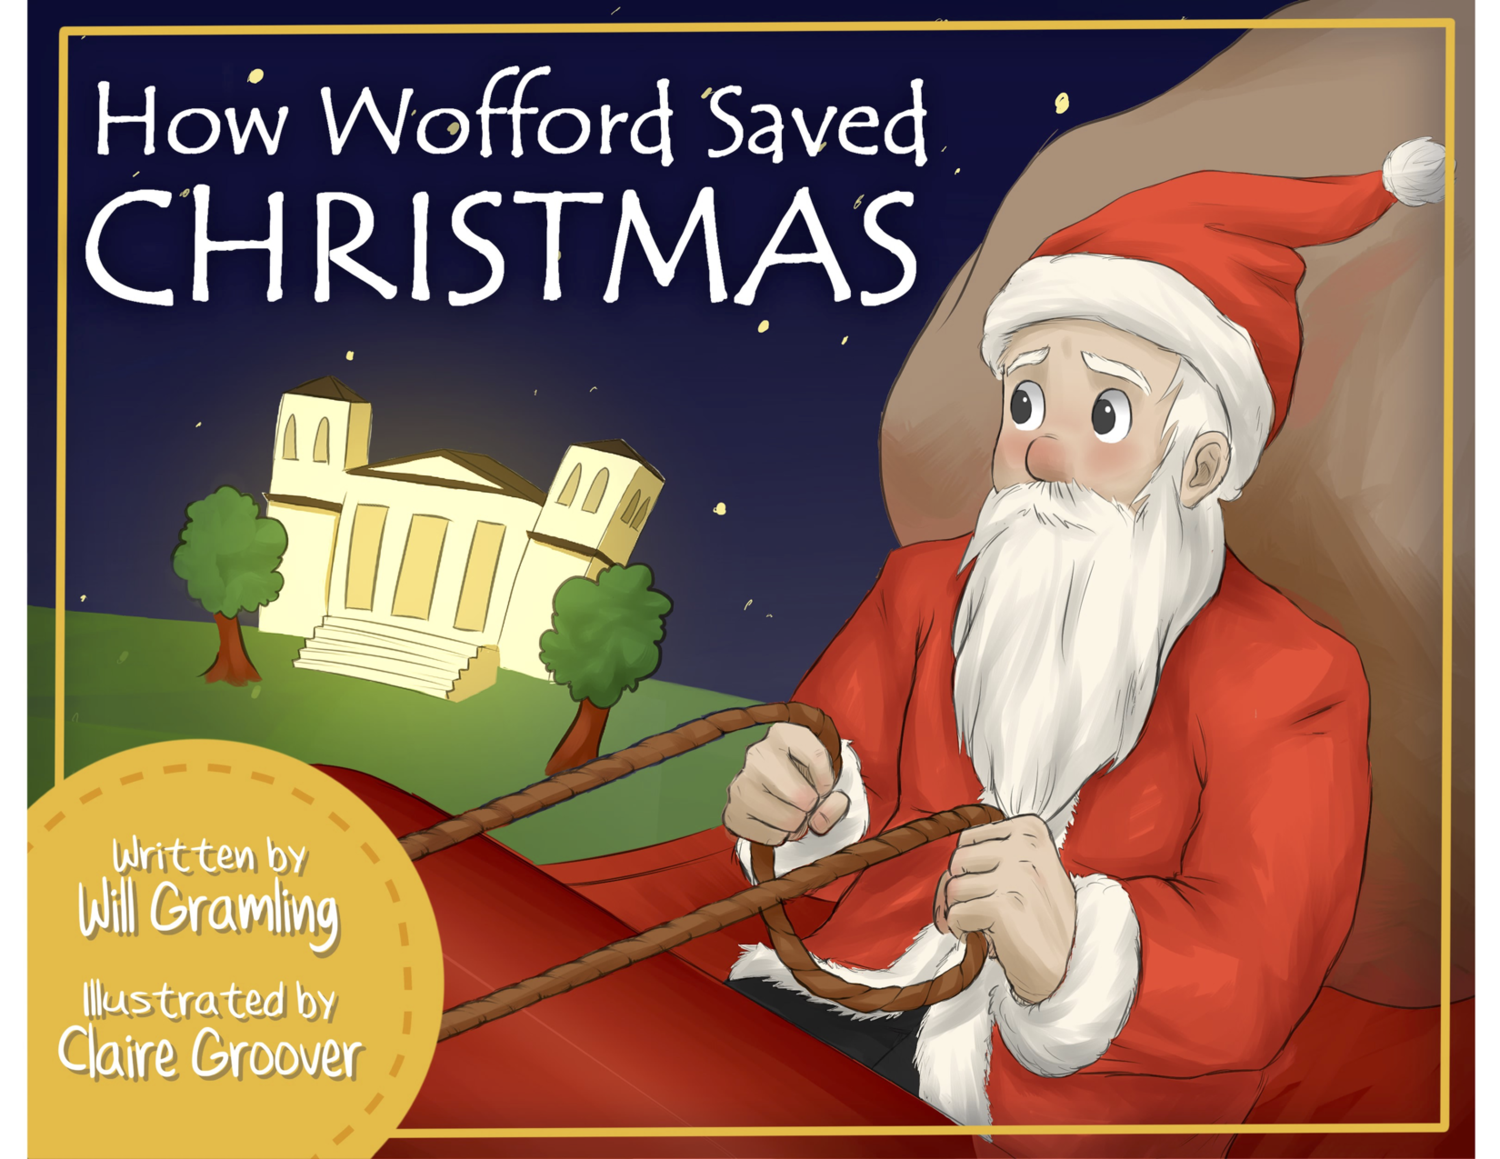 How Wofford Saved Christmas